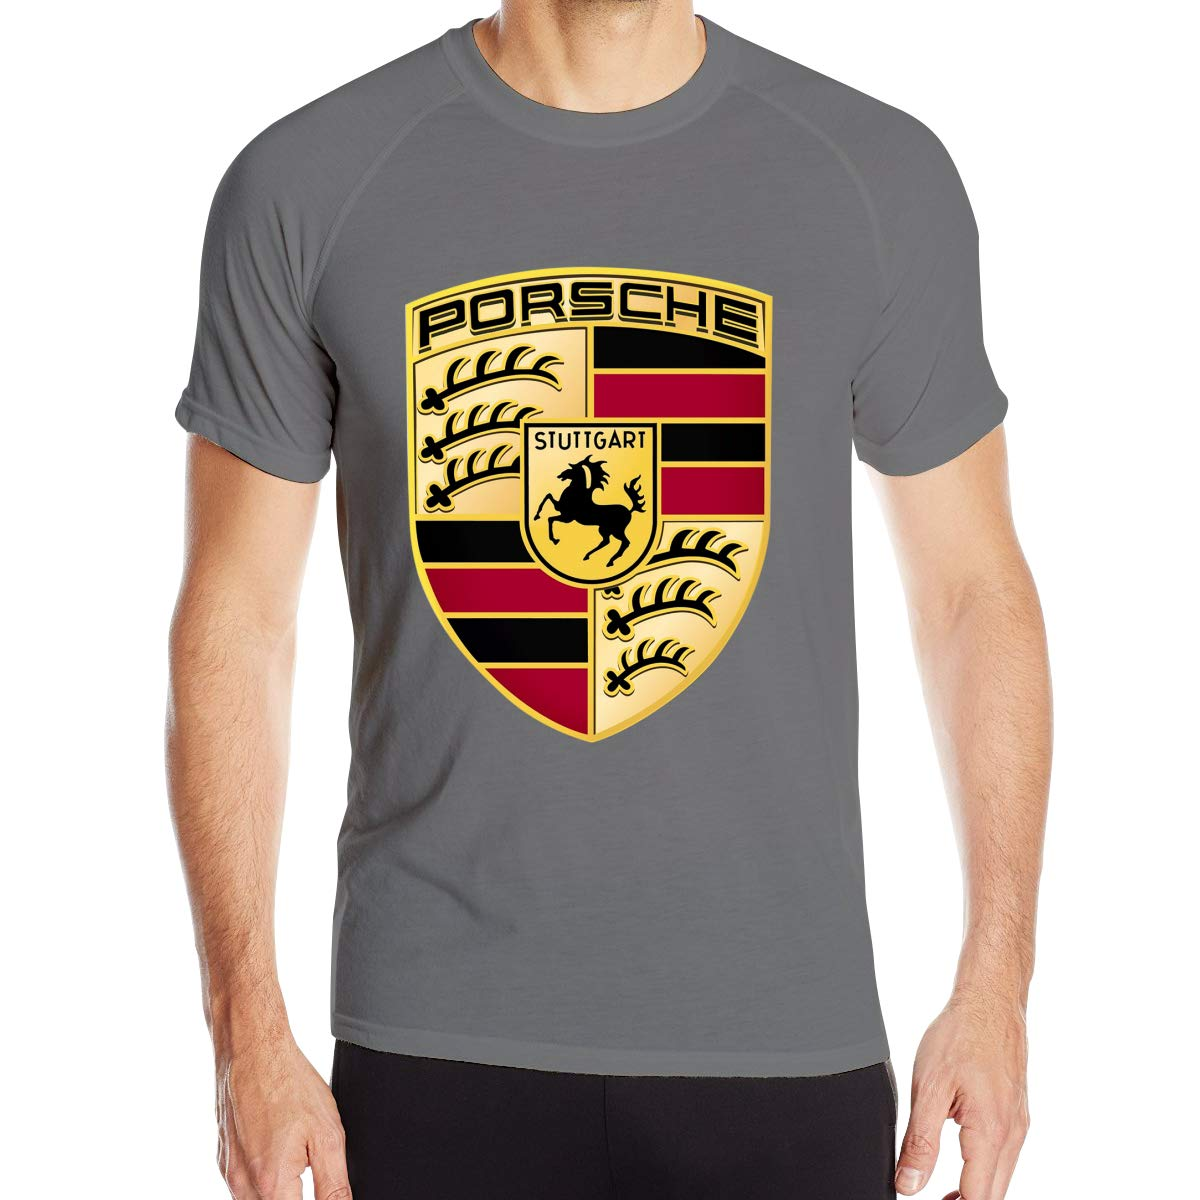 Zhyhang Mens Ferdinand Porsche Tshirt Deep Heather L by Zhyhang